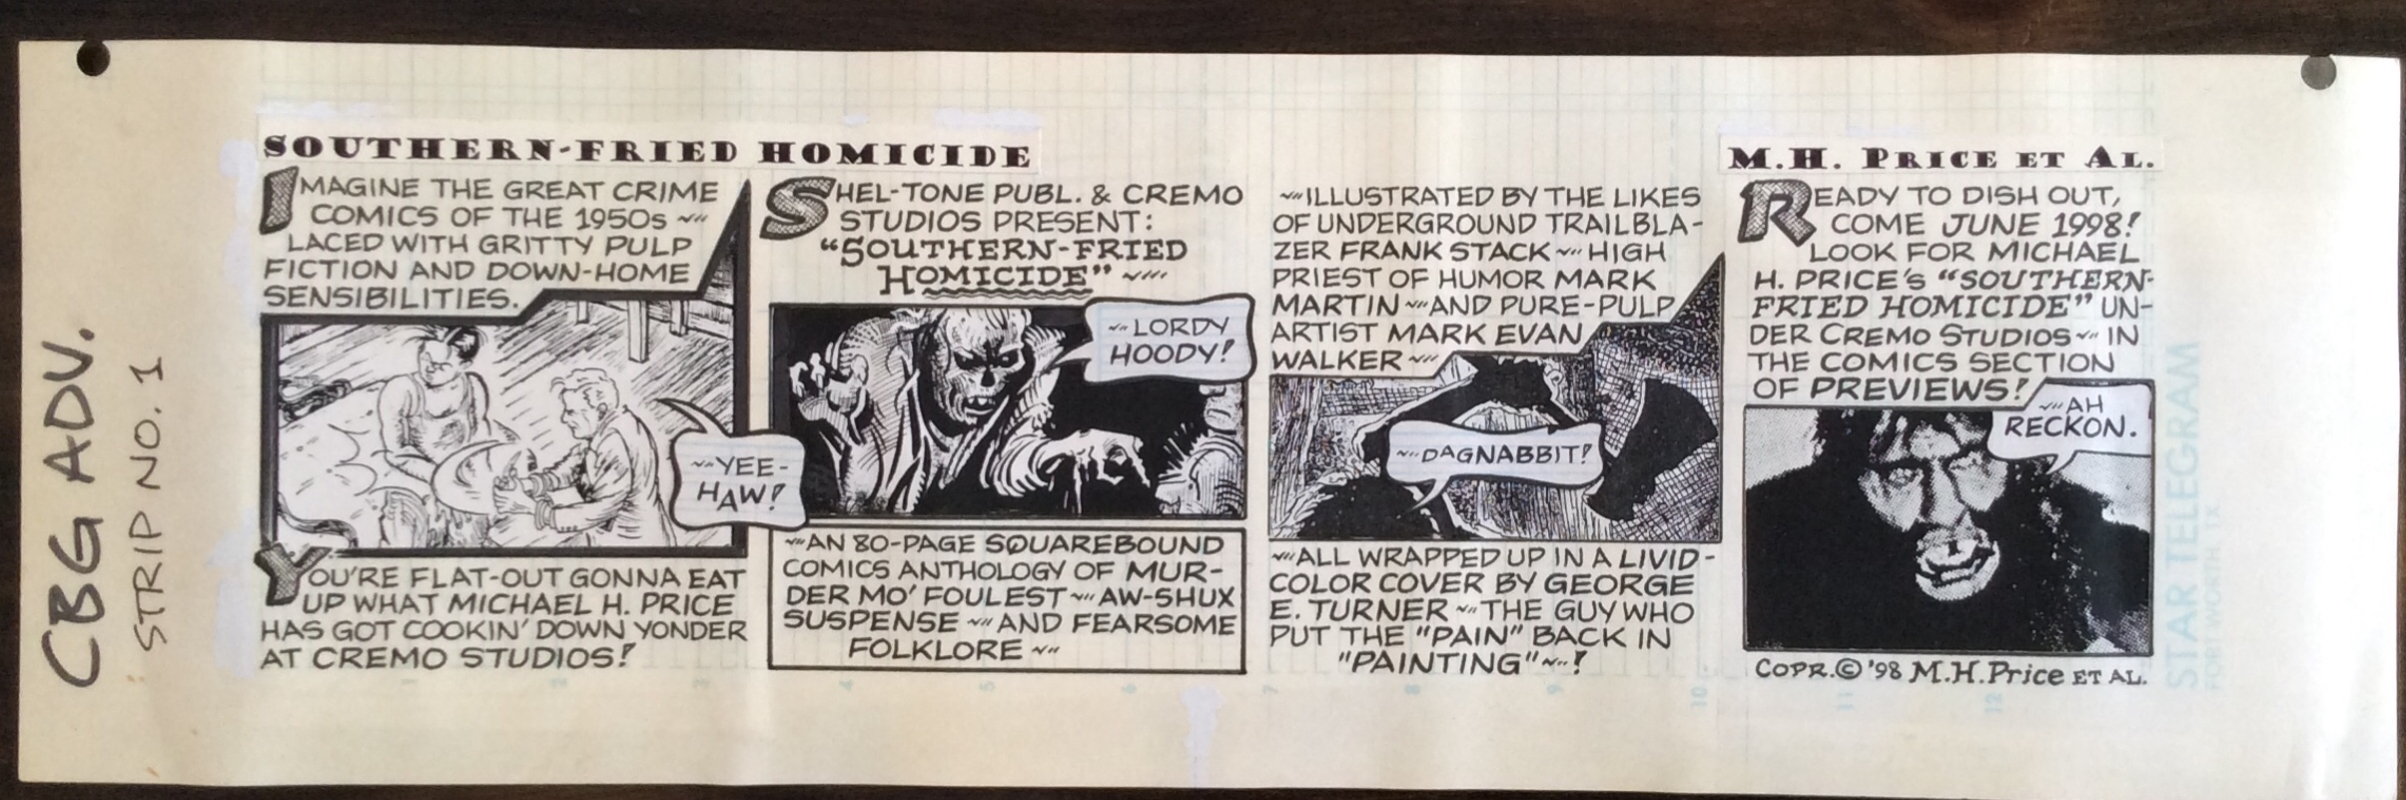 Southern comcic strips